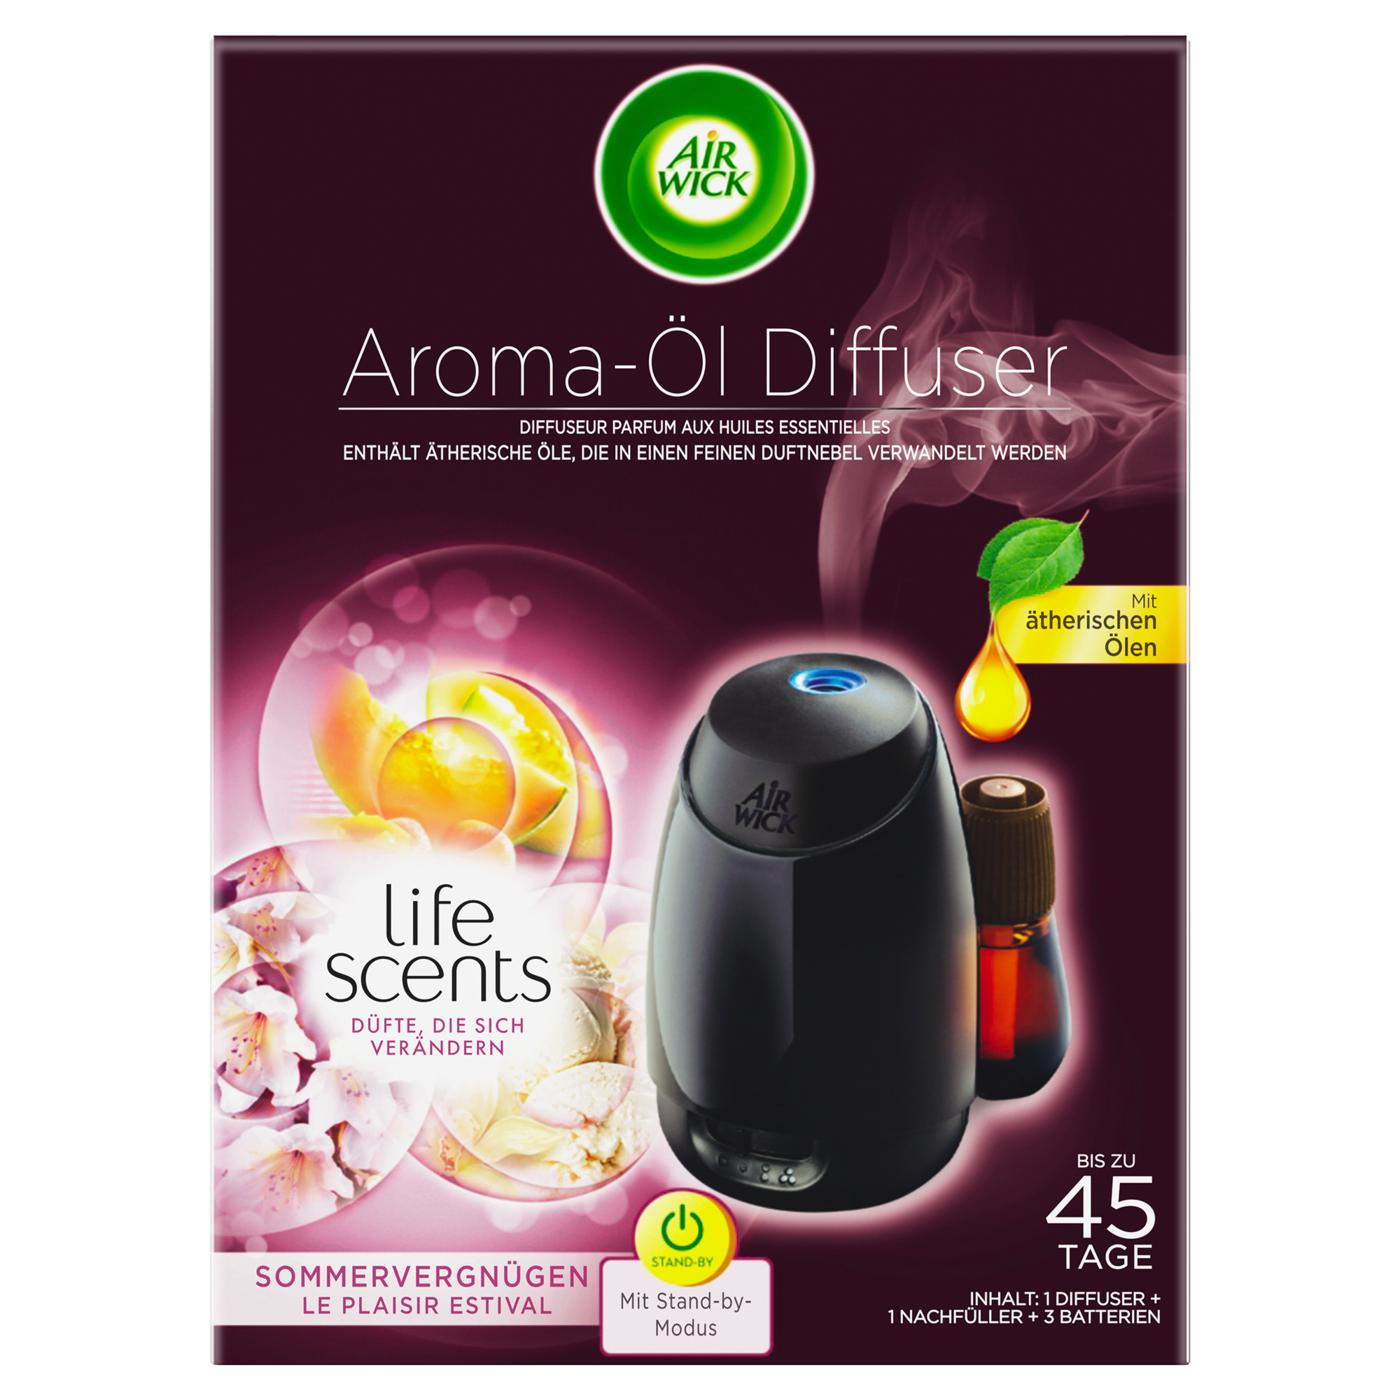 Duftöl Diffusor Life Scents Aroma Öl Diffuser